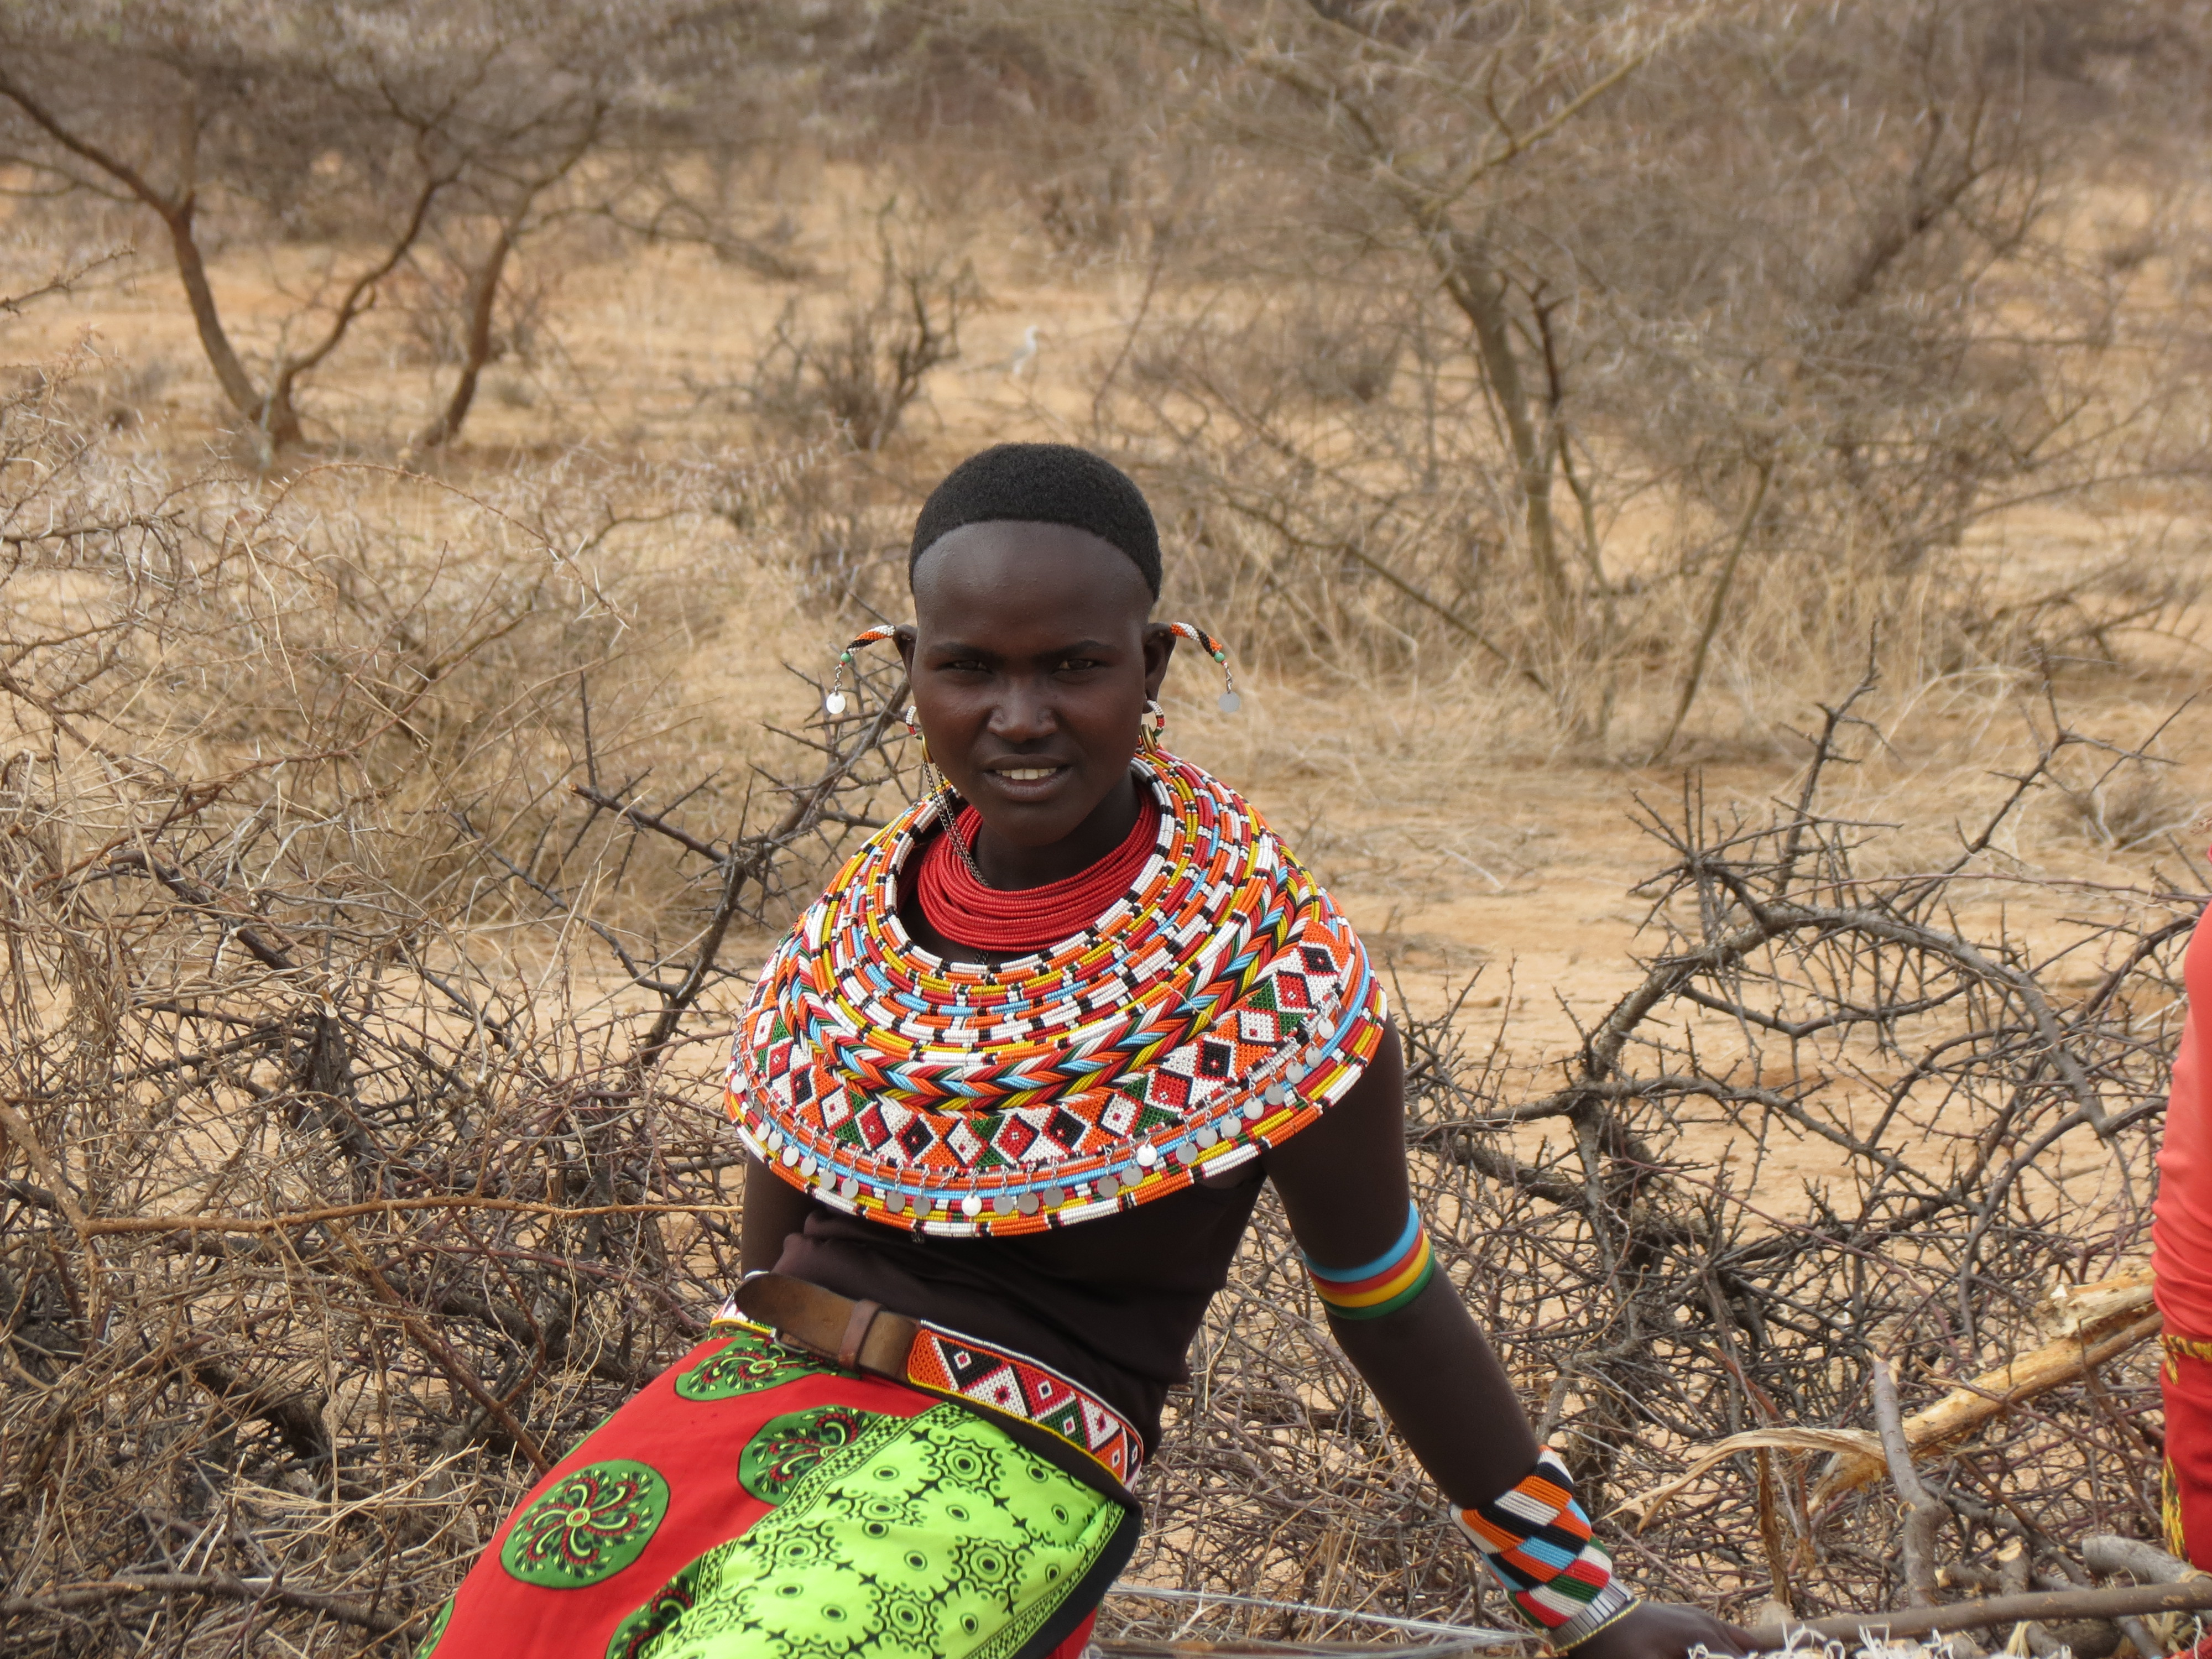 modernization vs tribalism in kenya essay Apic tribalism essay africa: the term is applied to kenya's maasai herders and kikuyu farmers  african leaders see tribalism as a major problem in their.